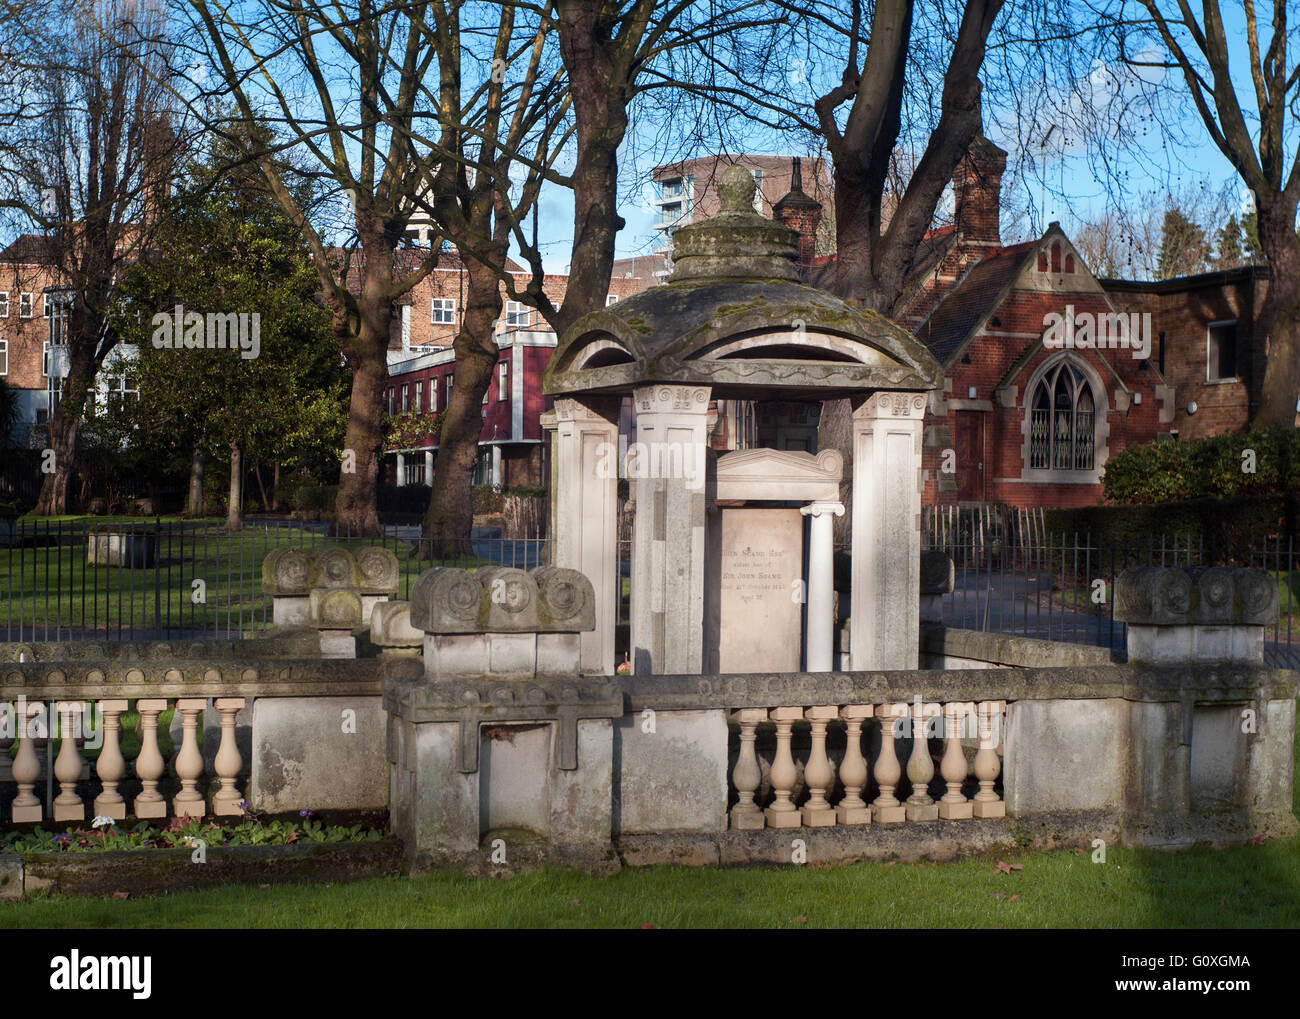 The tomb of architect SIR JOHN SOANE at St Pancras Old Church,this design  inspired Londons iconic red telephone - Stock Image